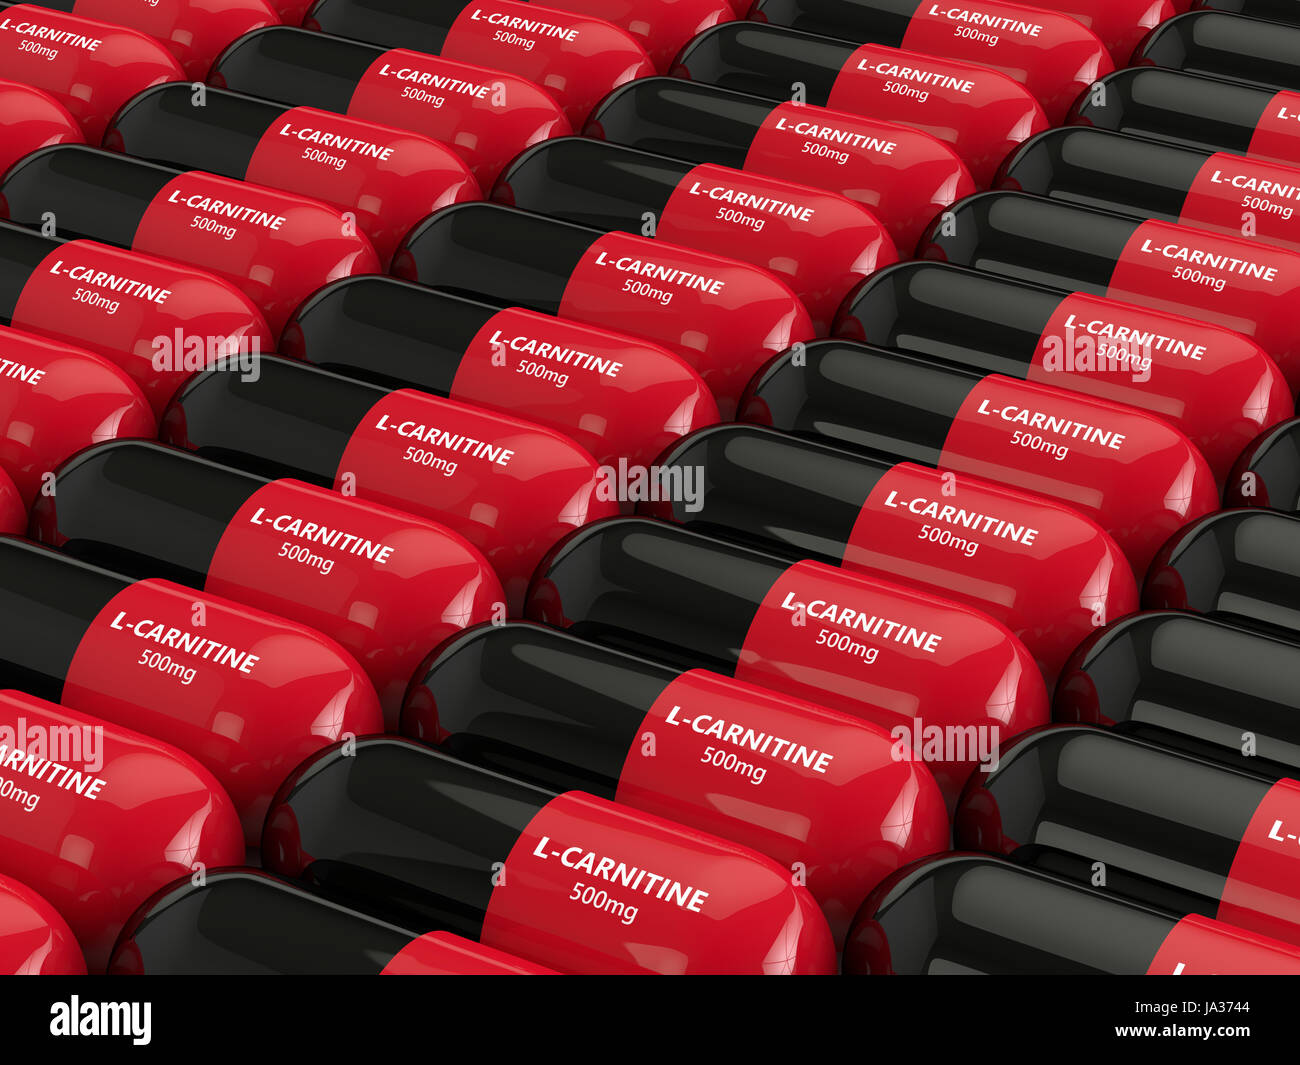 3D rendering of l-karnitine pills in row Stock Photo